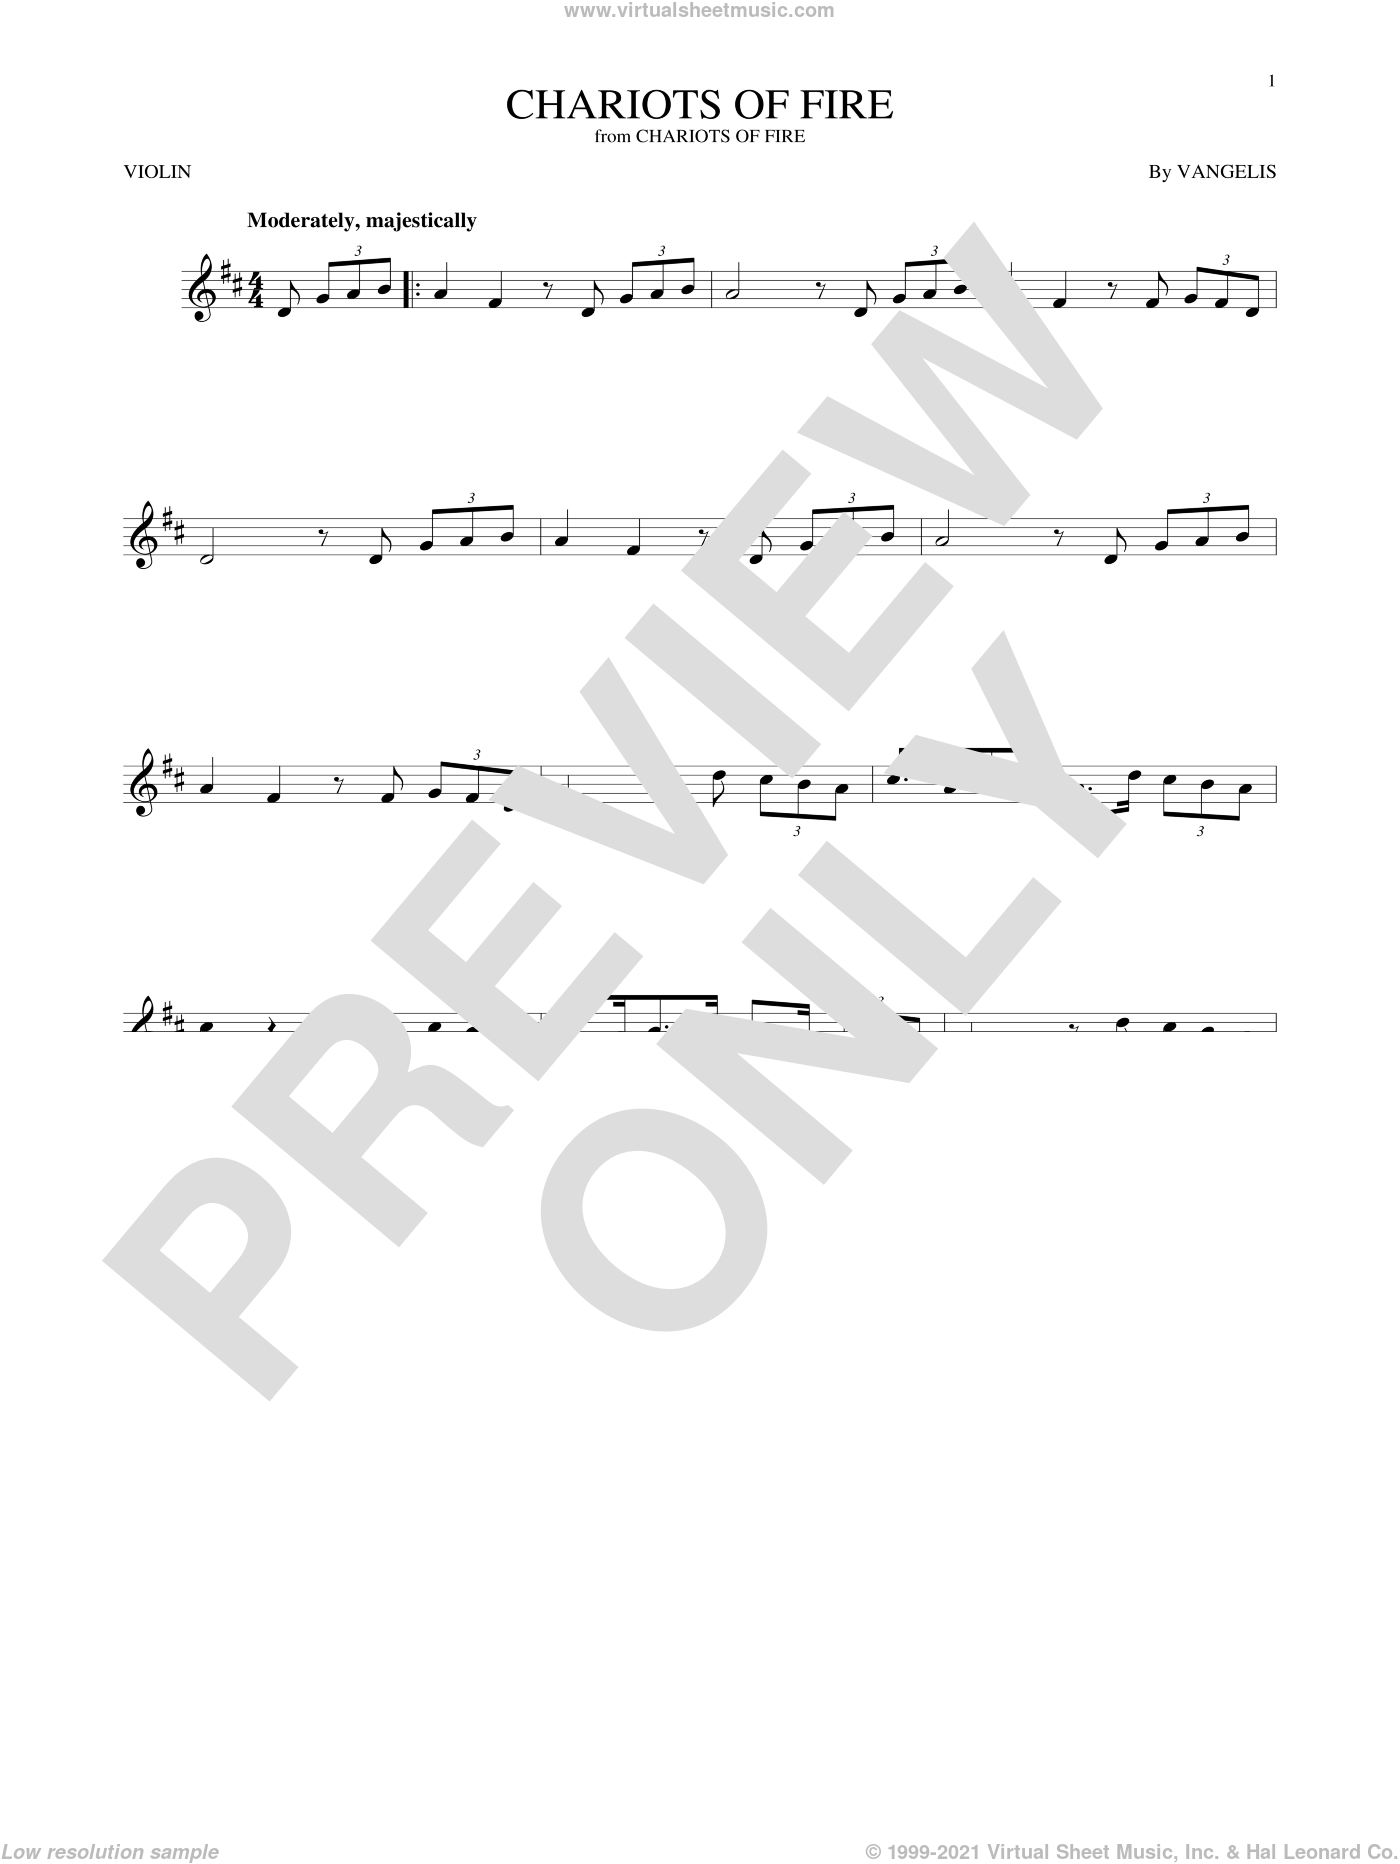 Chariots Of Fire sheet music for violin solo by Vangelis, intermediate skill level